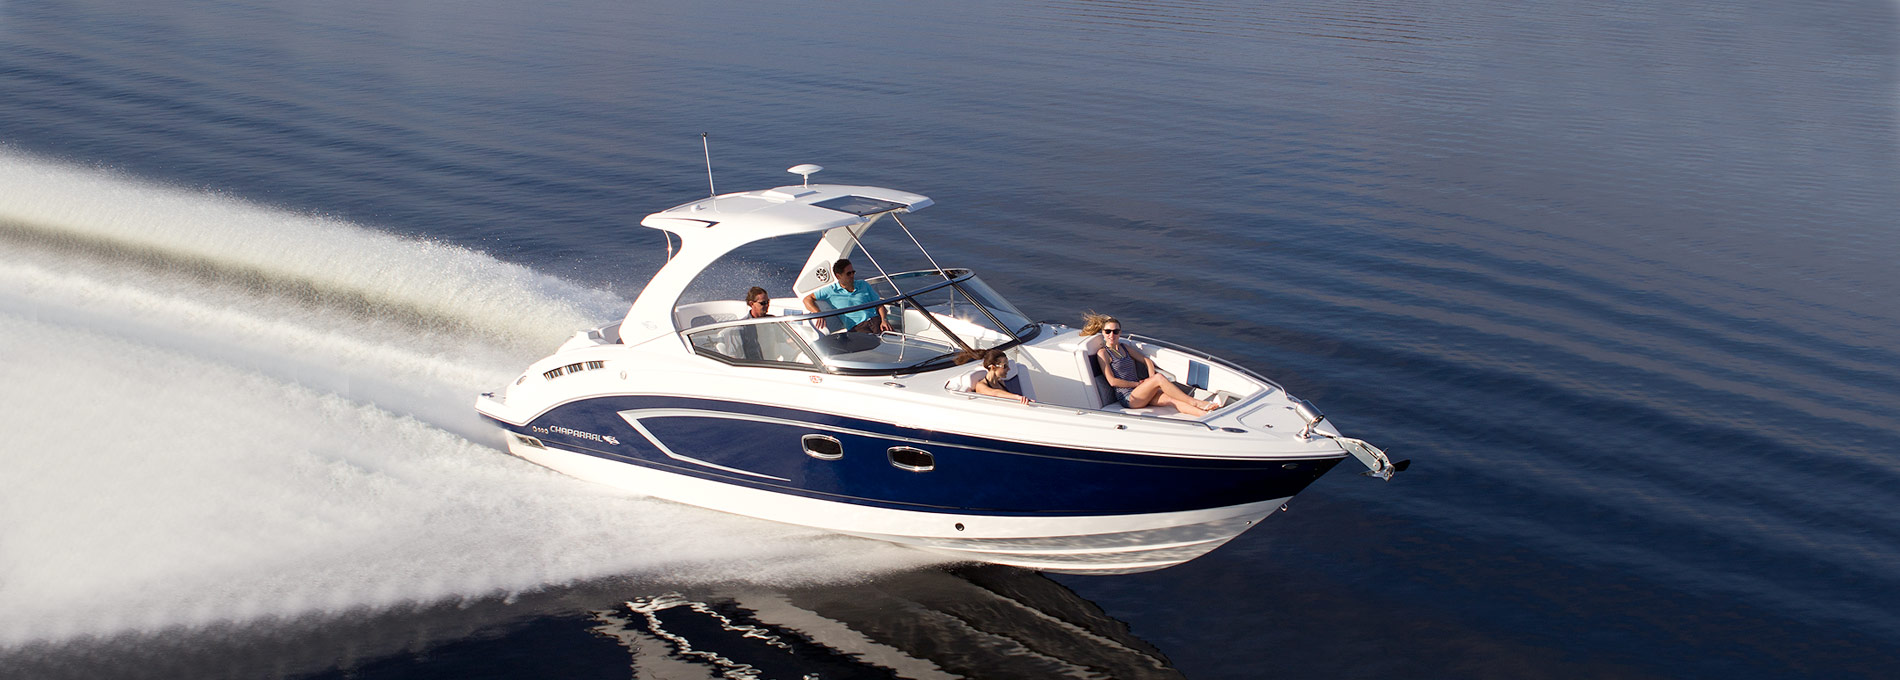 Chaparral 327 ssx for sale in Newport Beach